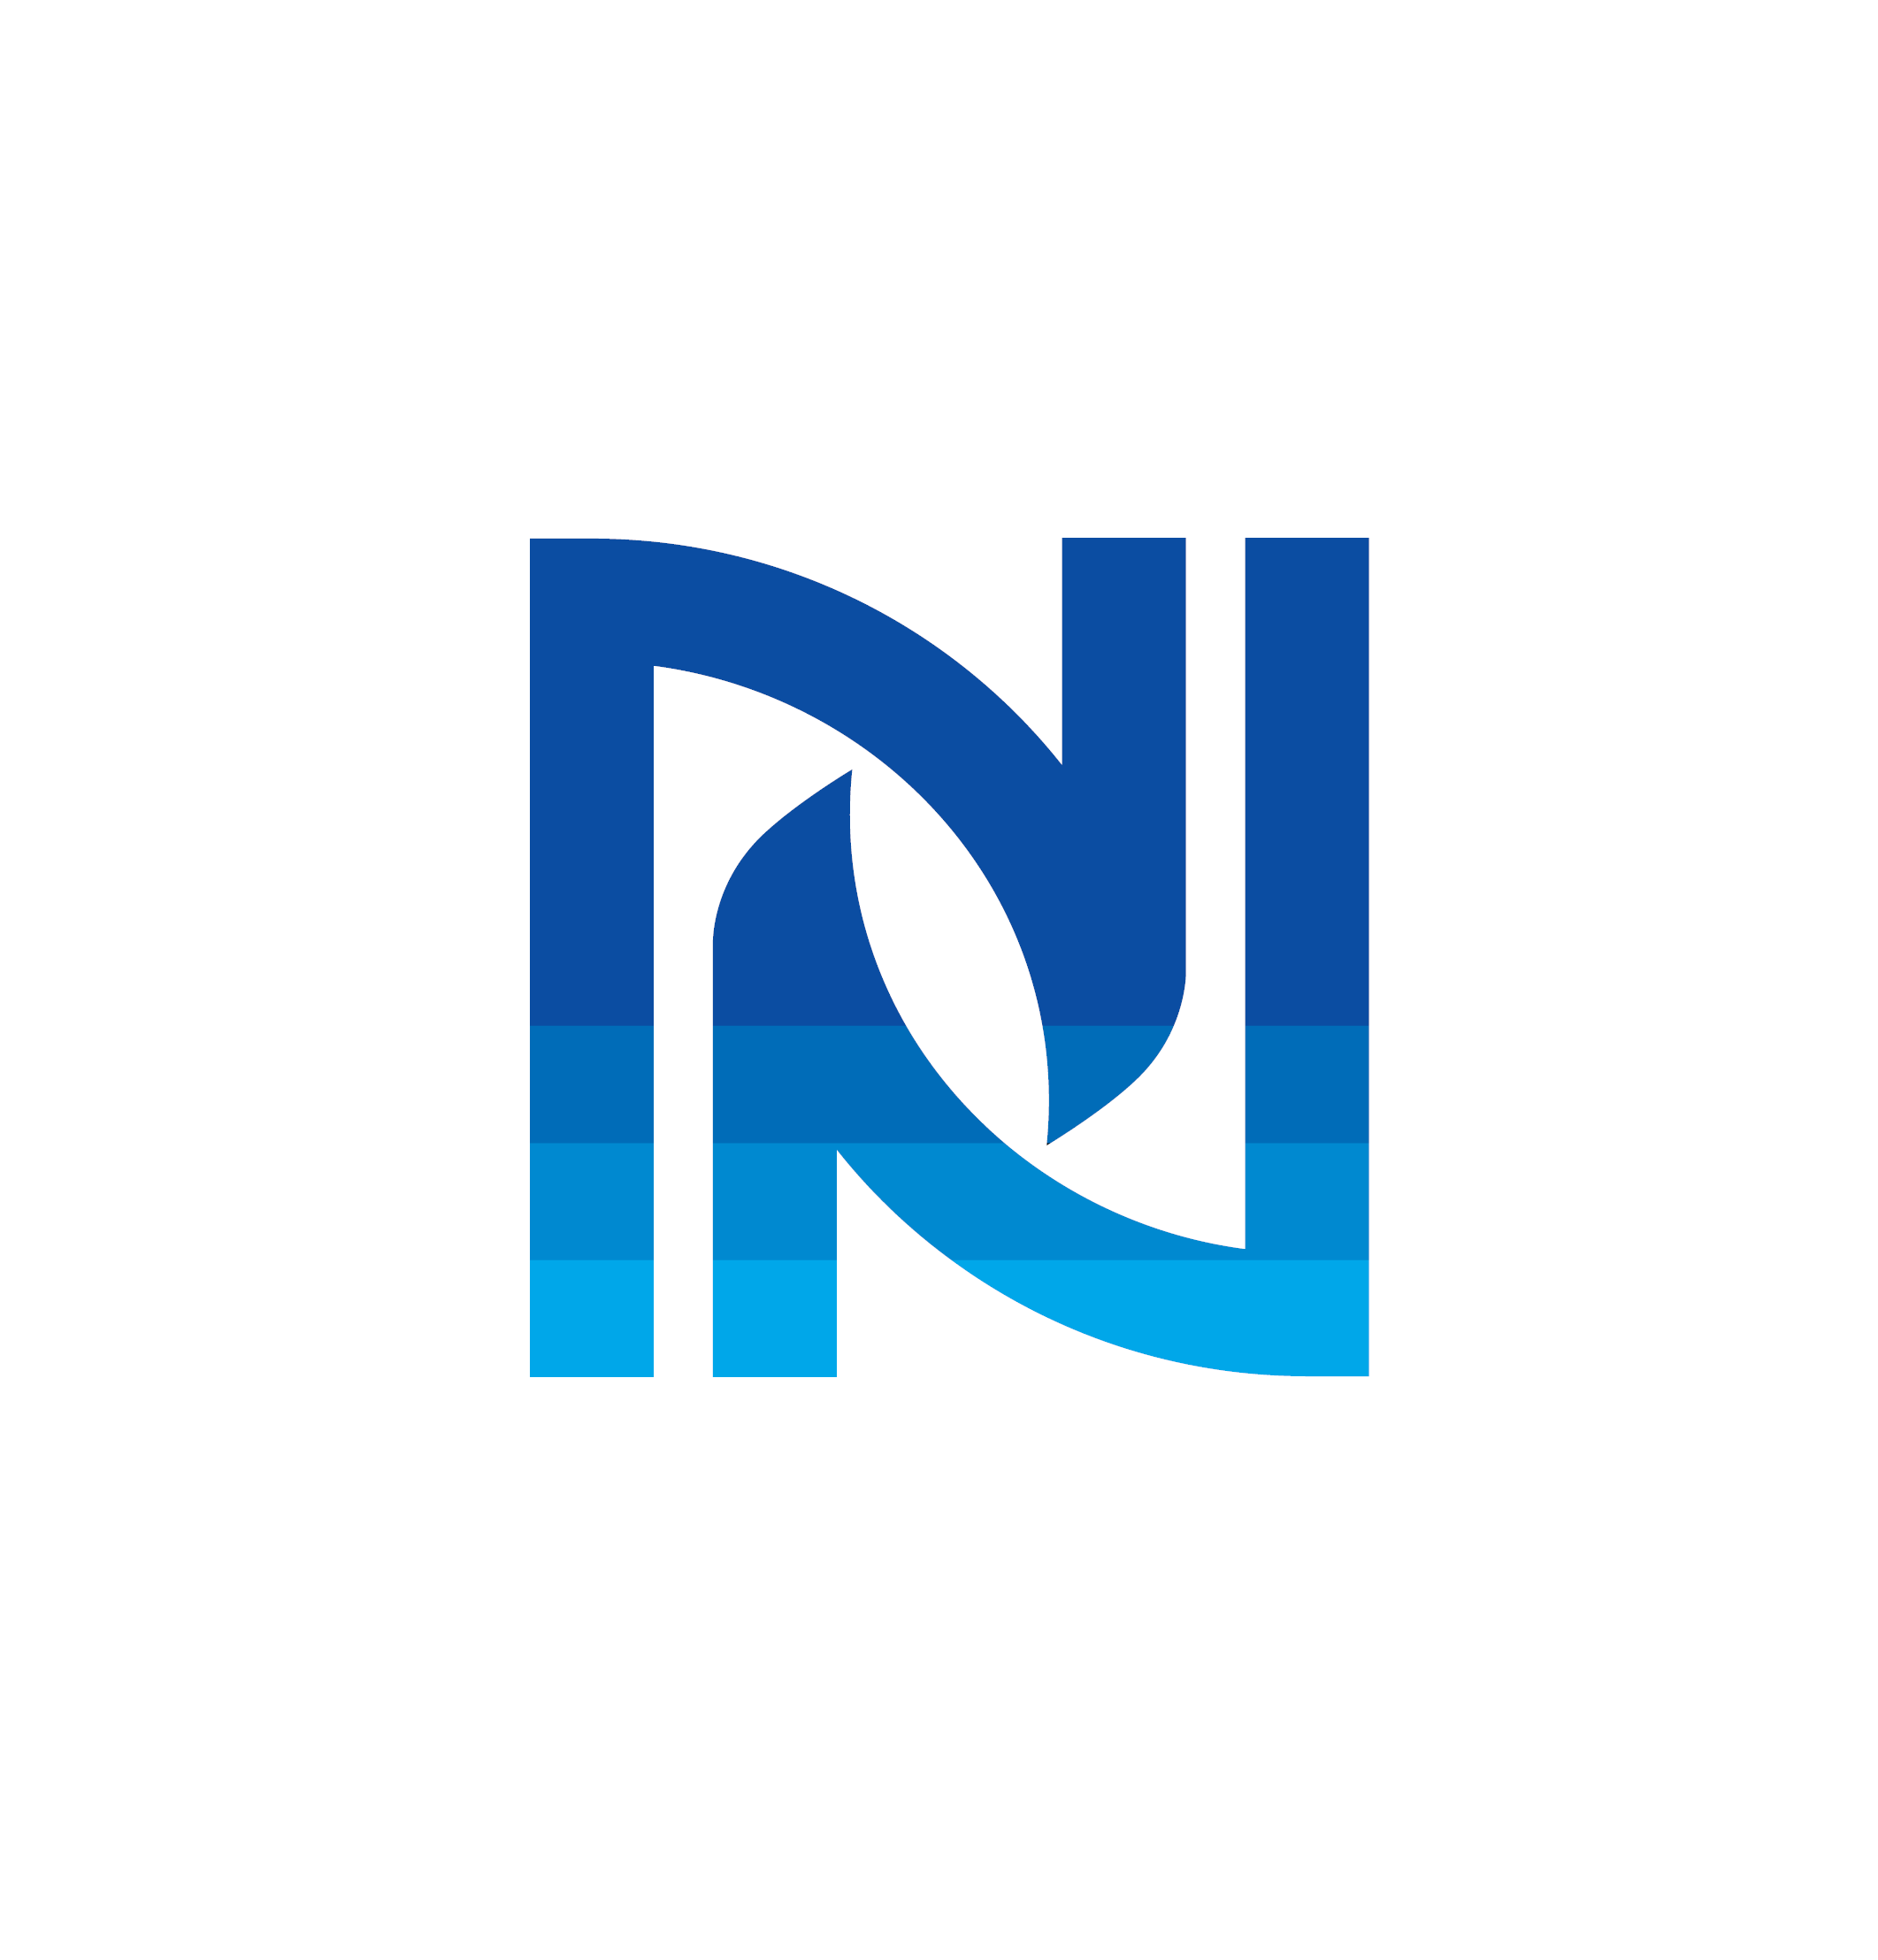 Nanjing BioMedical Research Institute of Nanjing University (NBRI-NJU) Lab / Facility Logo